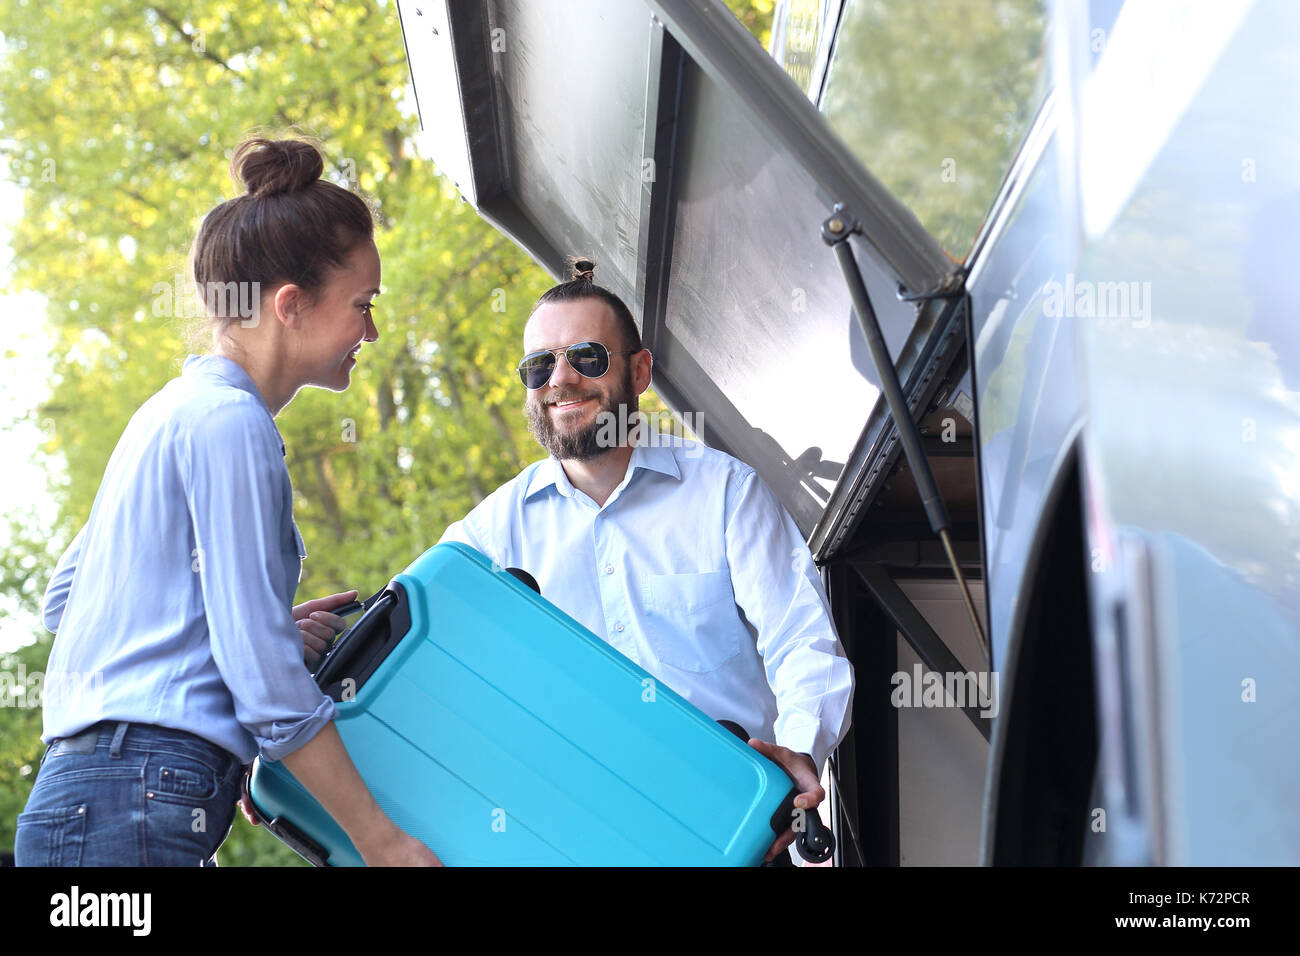 The passenger inserts the suitcase into the luggage compartment on the bus. - Stock Image